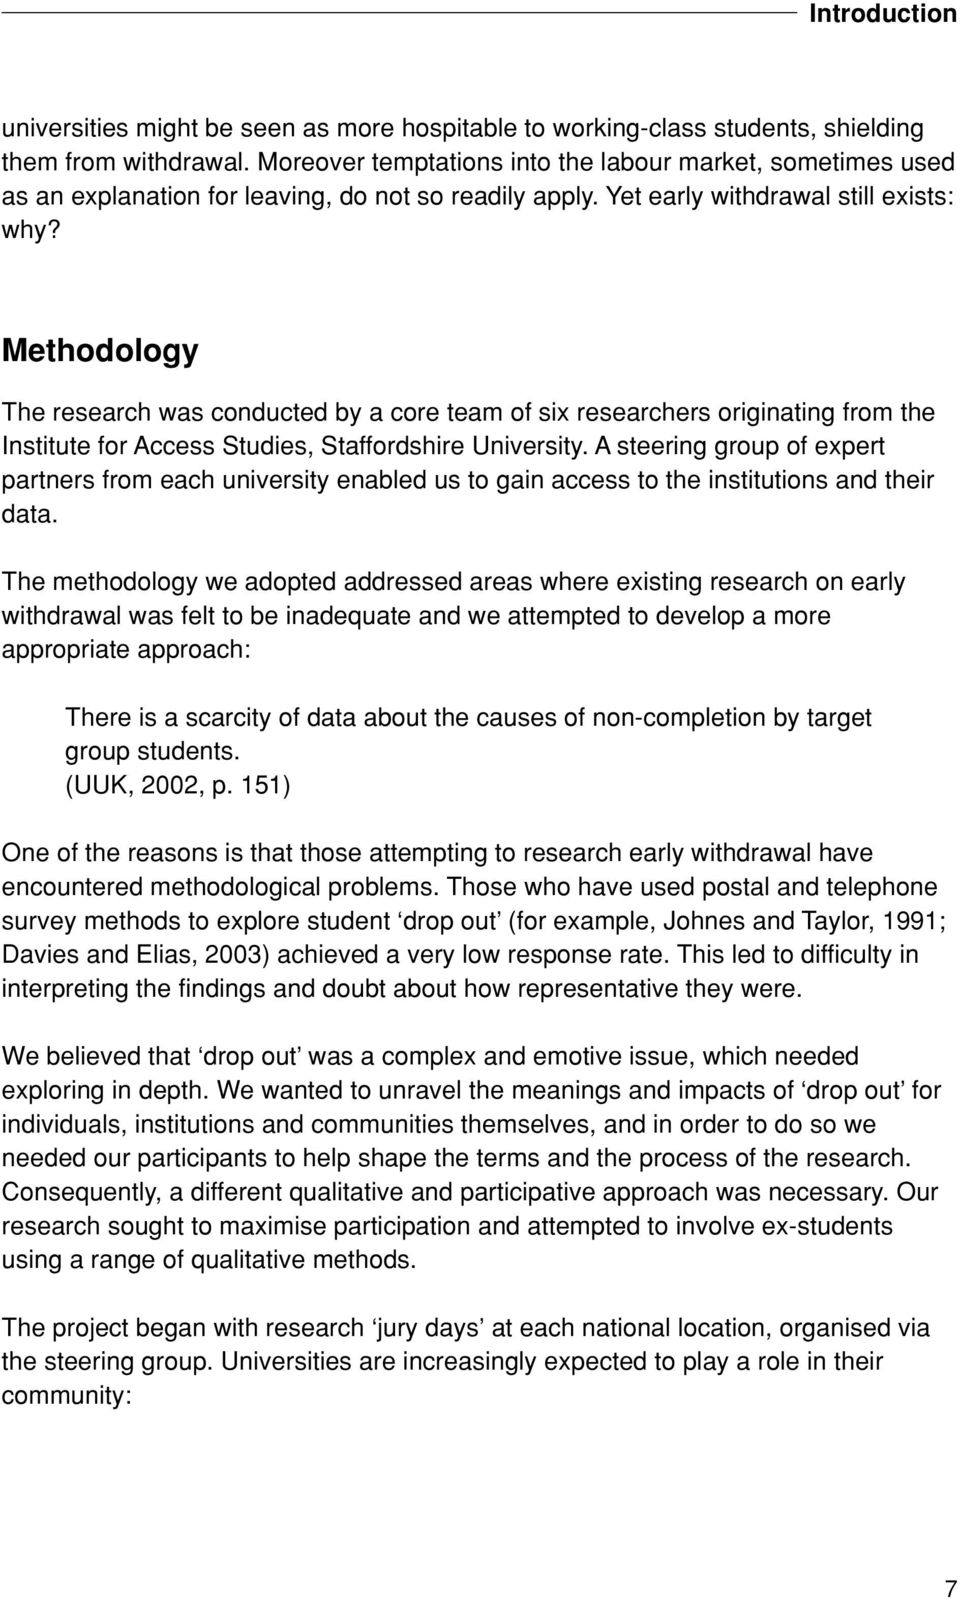 Methodology The research was conducted by a core team of six researchers originating from the Institute for Access Studies, Staffordshire University.